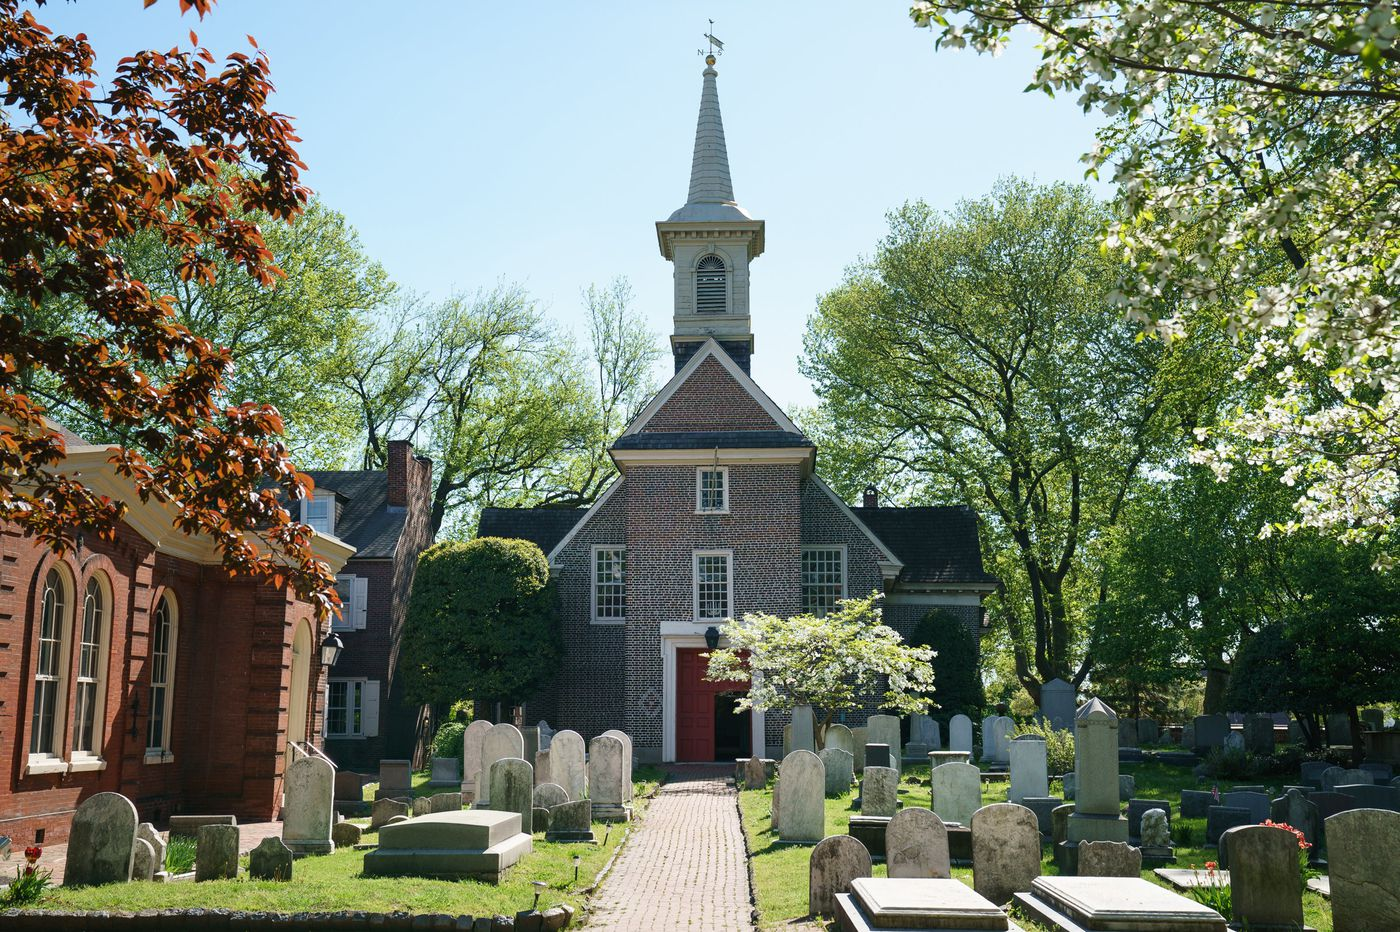 They're rare, but you can find 17th-century buildings in Philadelphia